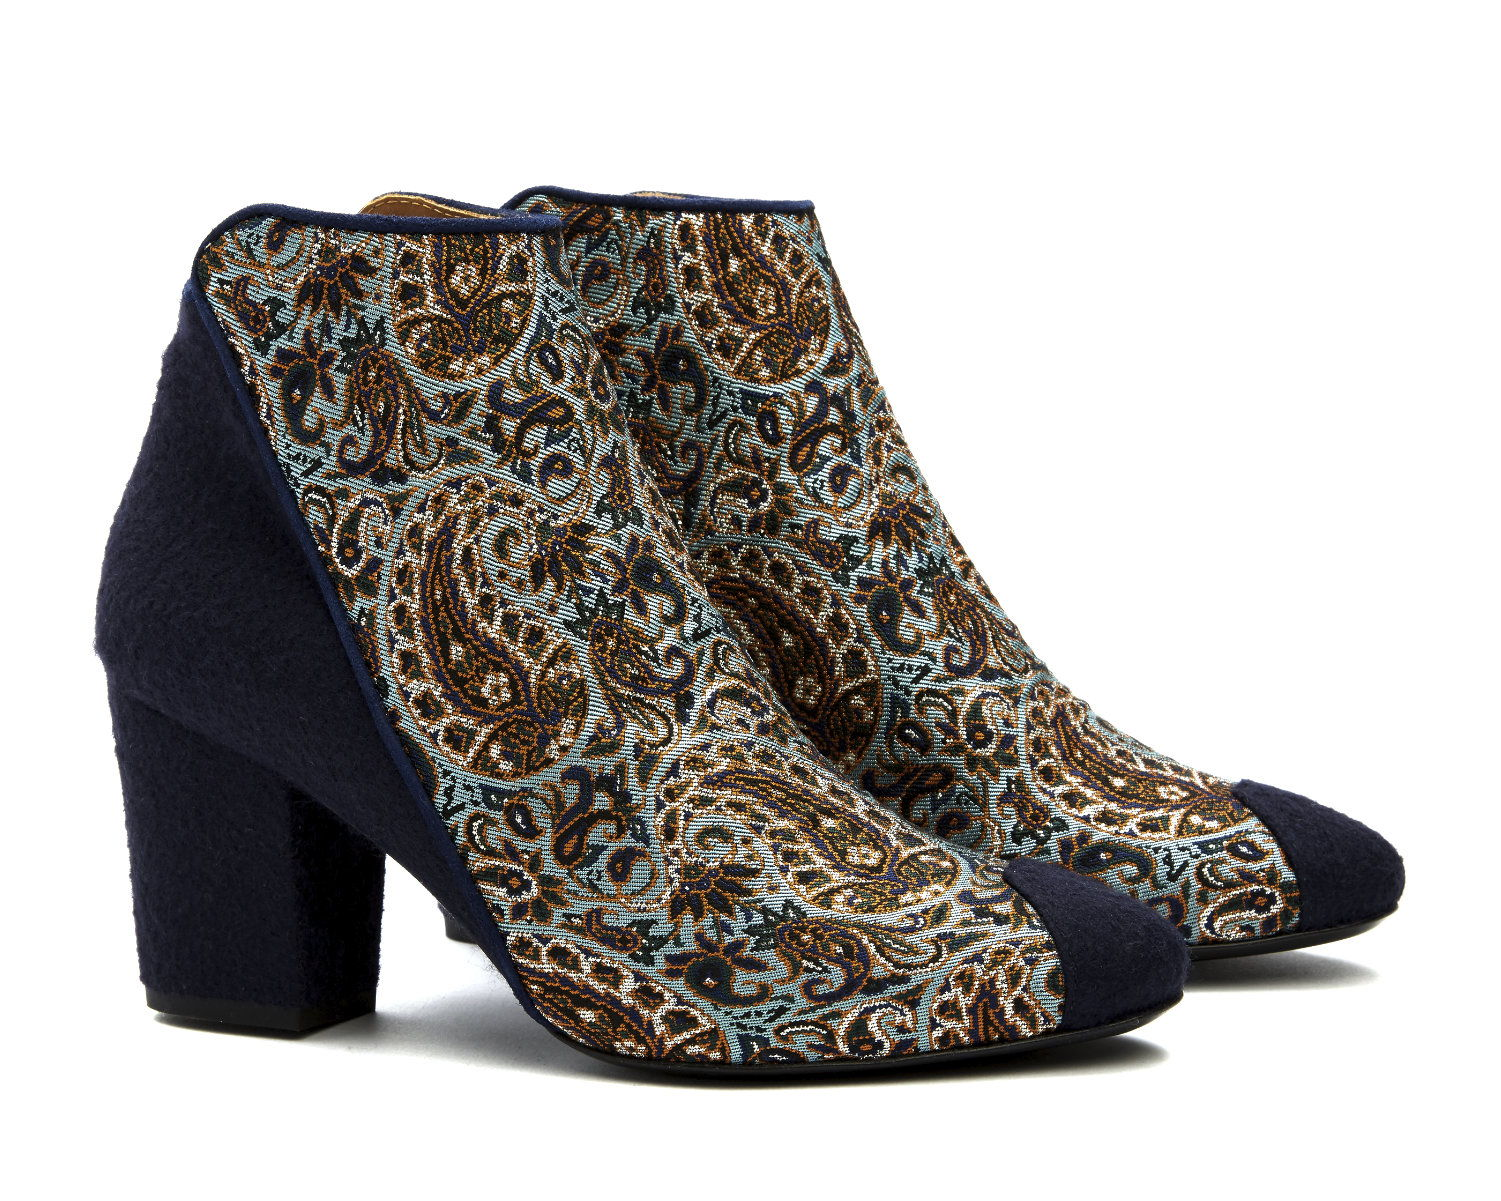 Boté A Mano Ankle Boots Women Uk Made in Italy